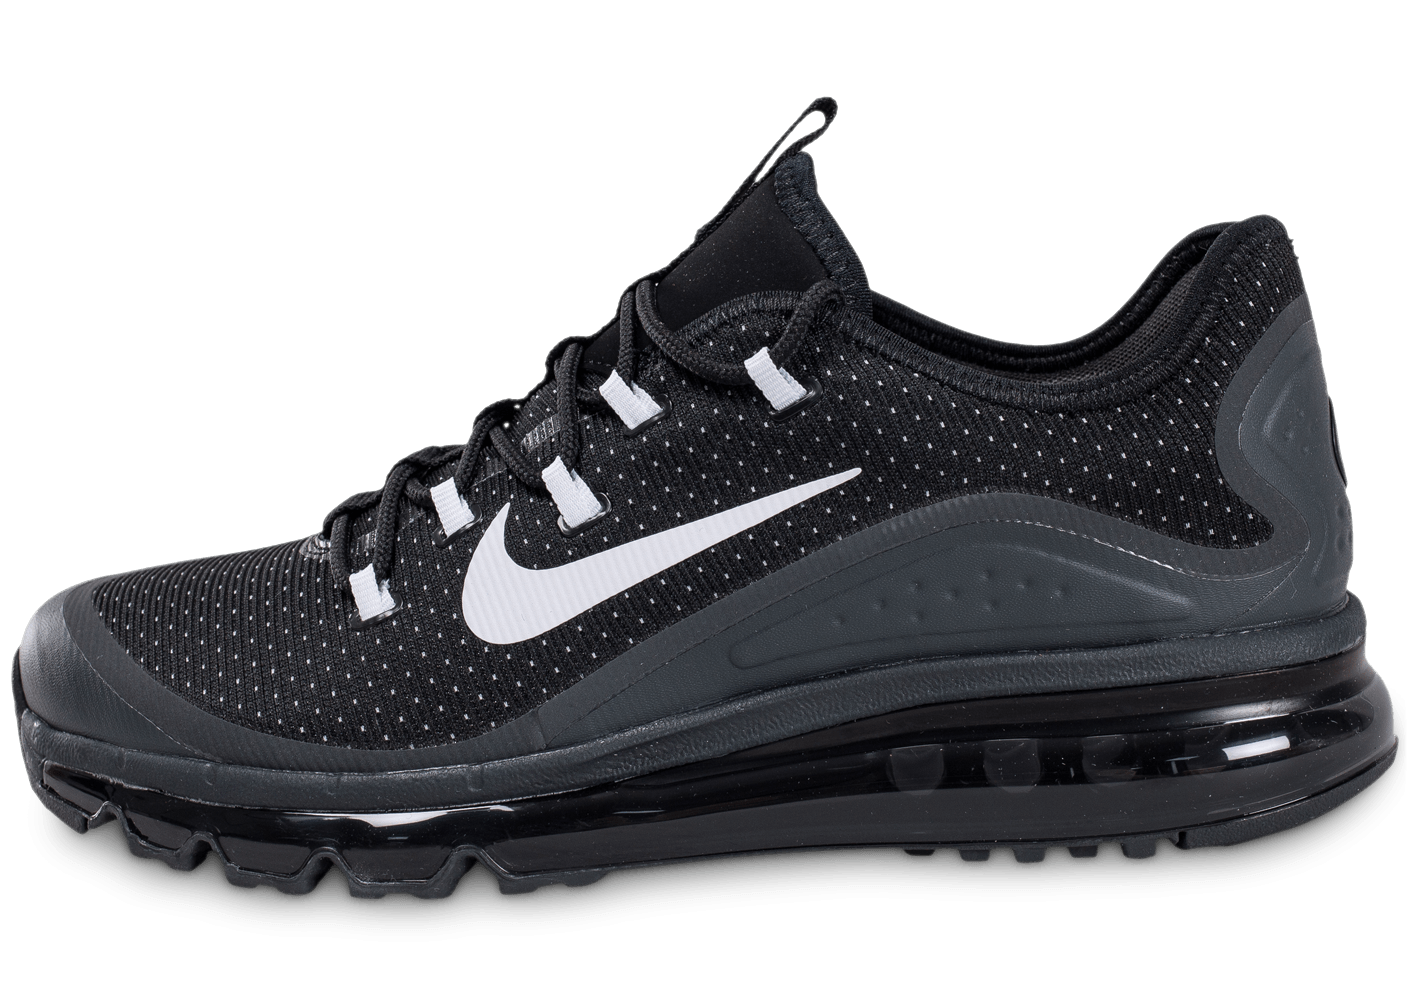 nike air max more noire chaussures baskets homme chausport. Black Bedroom Furniture Sets. Home Design Ideas